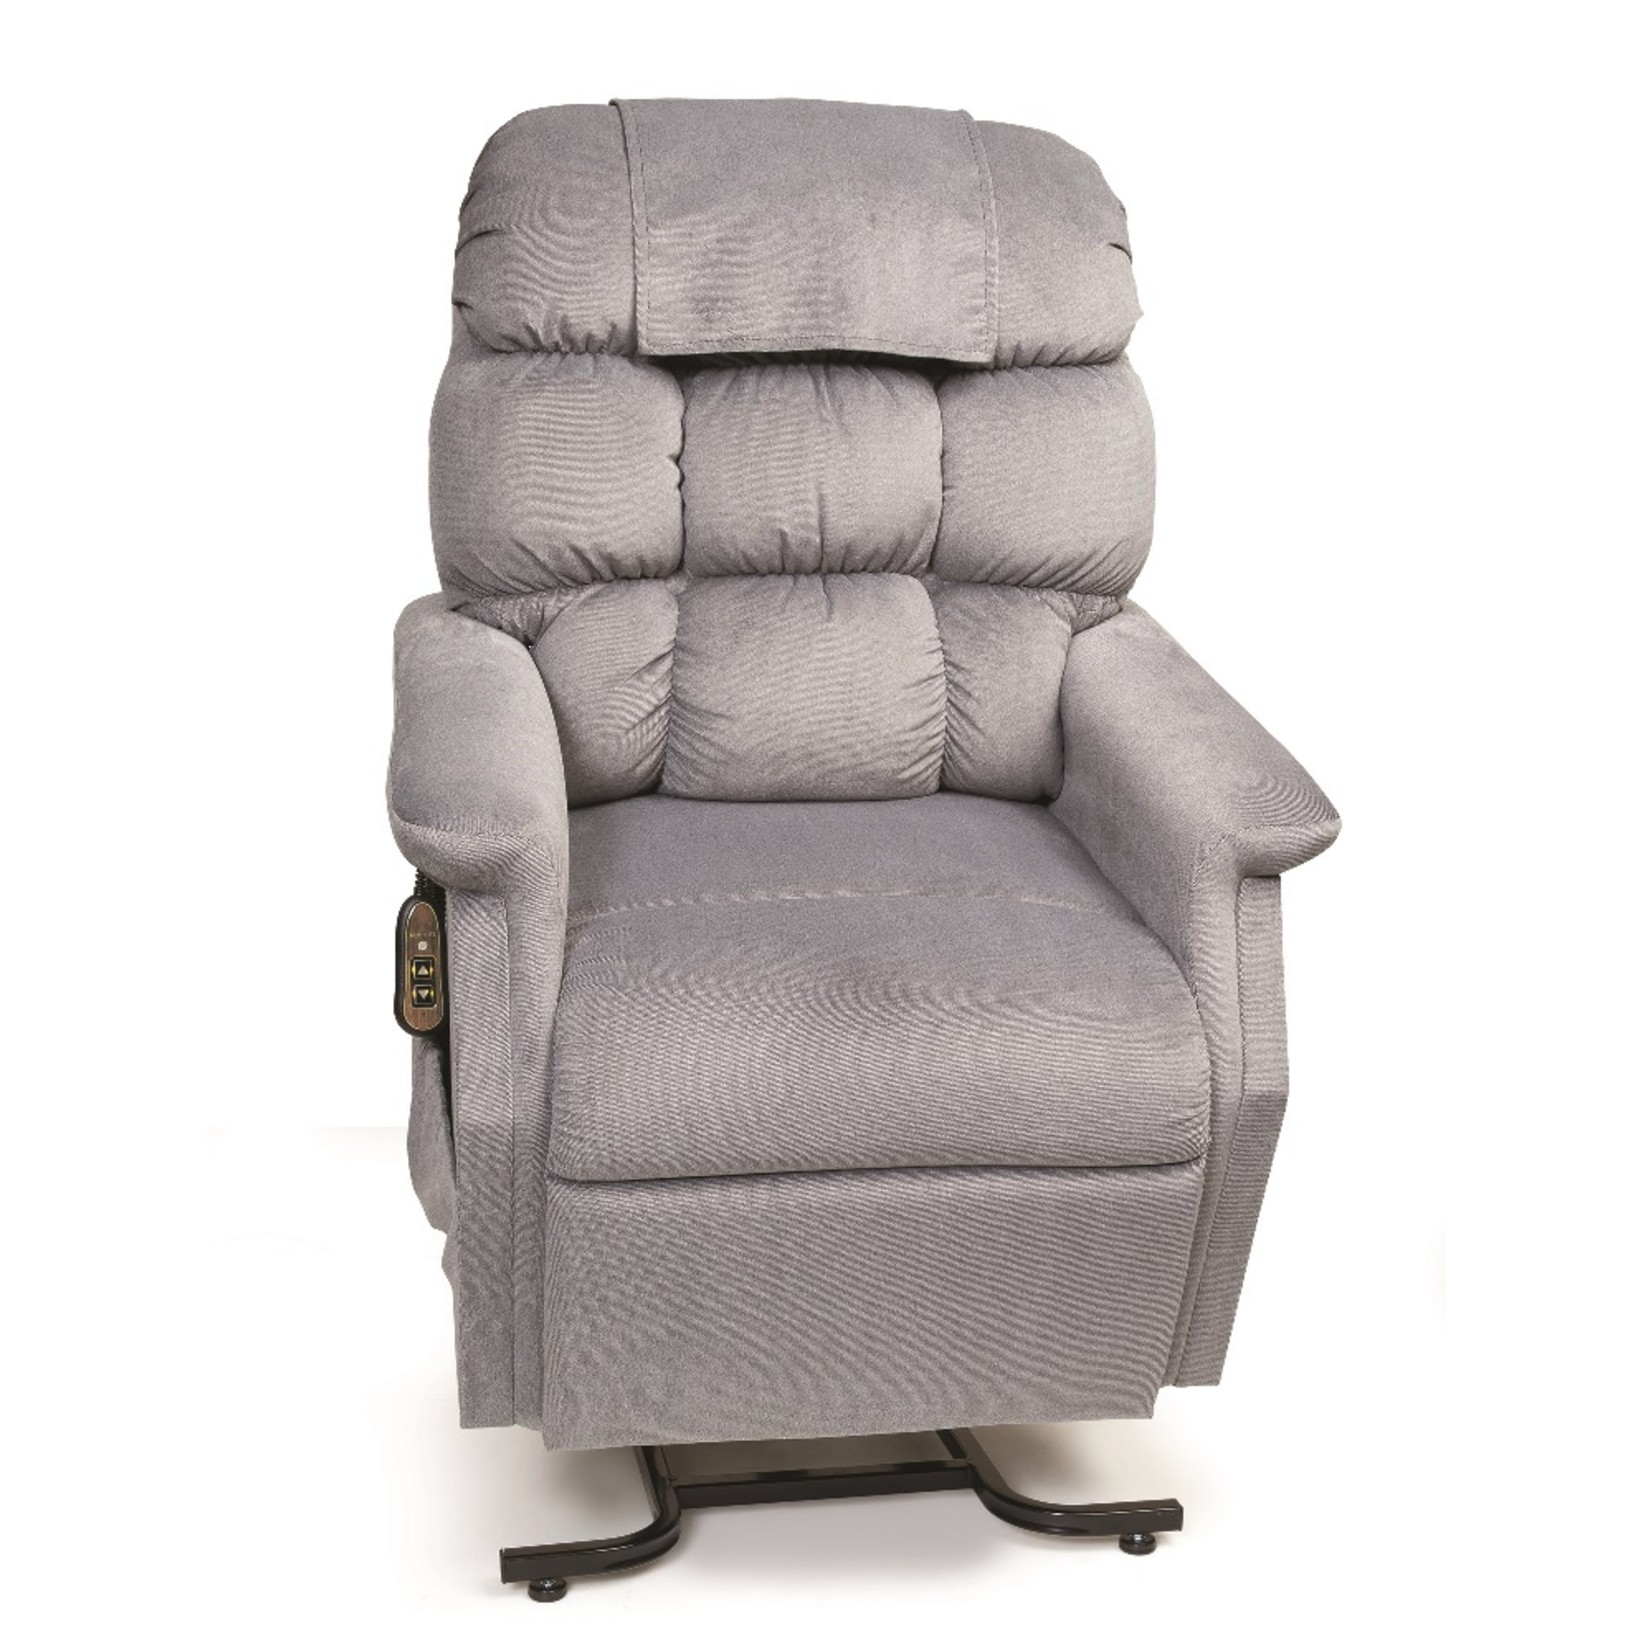 Golden Technologies Cambridge Recliner Chair